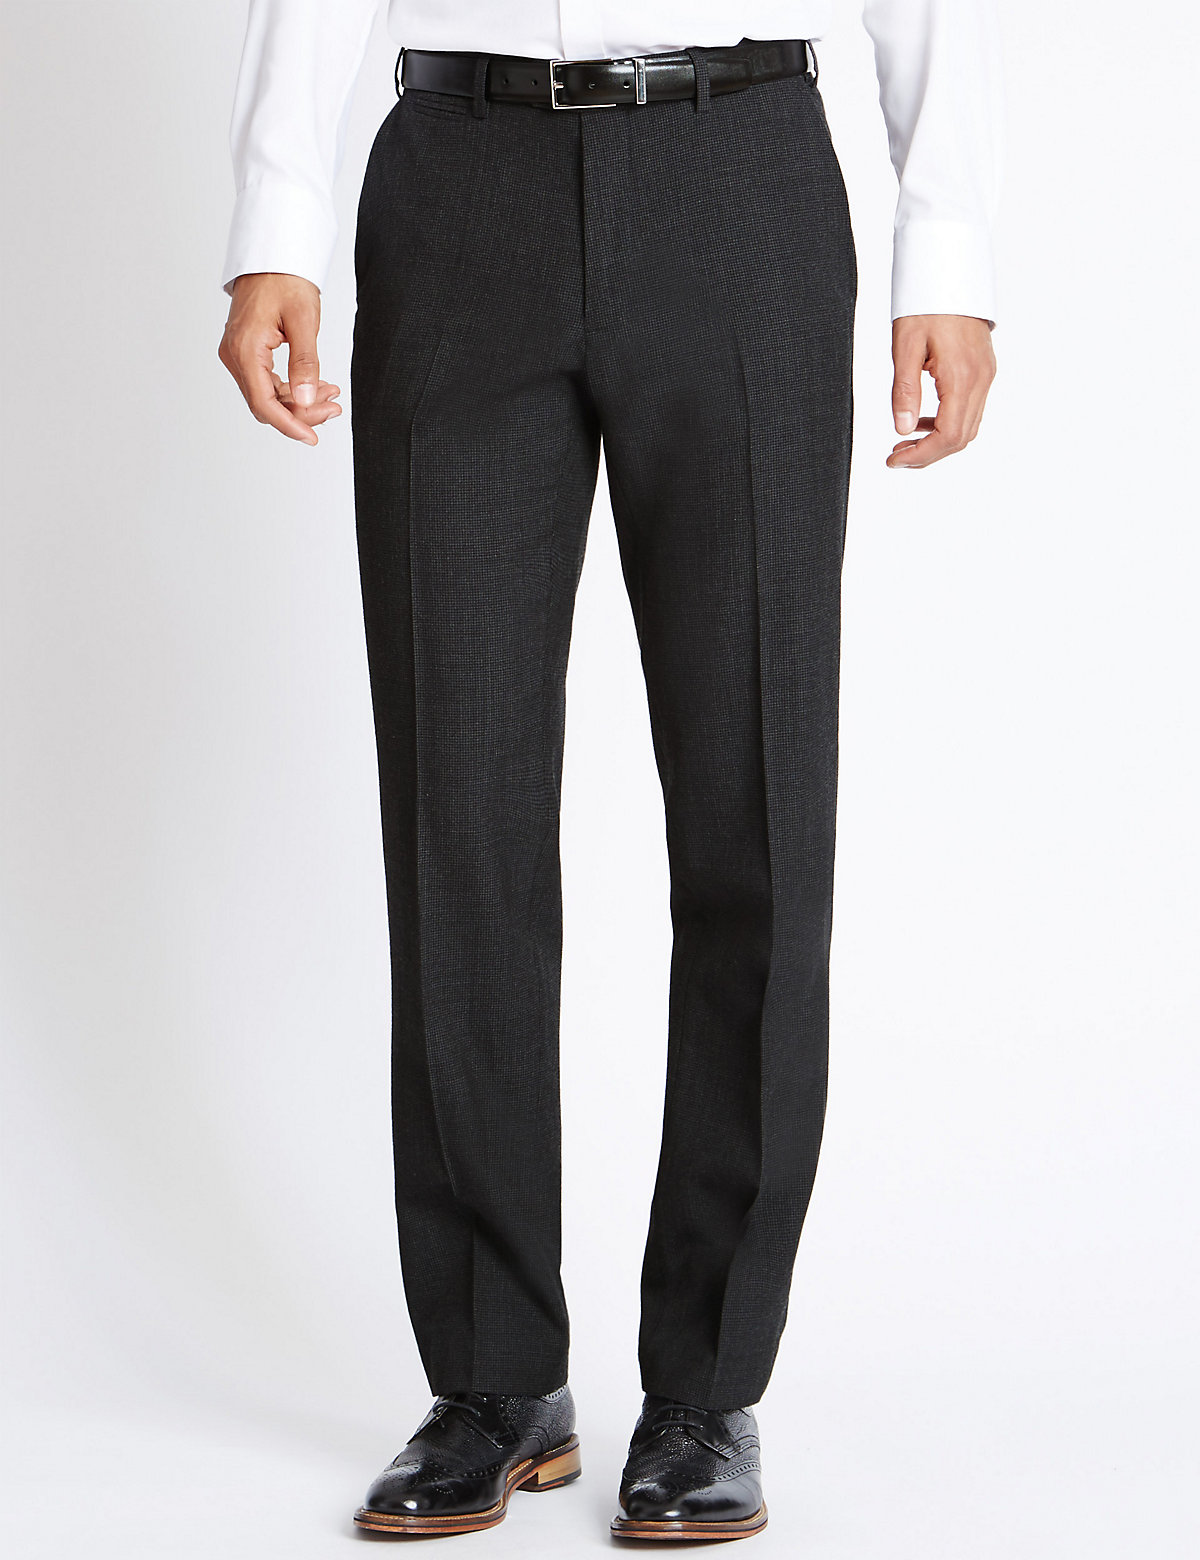 M&S Collection Wool Blend Supercrease Flat Front Trousers with Stormwear